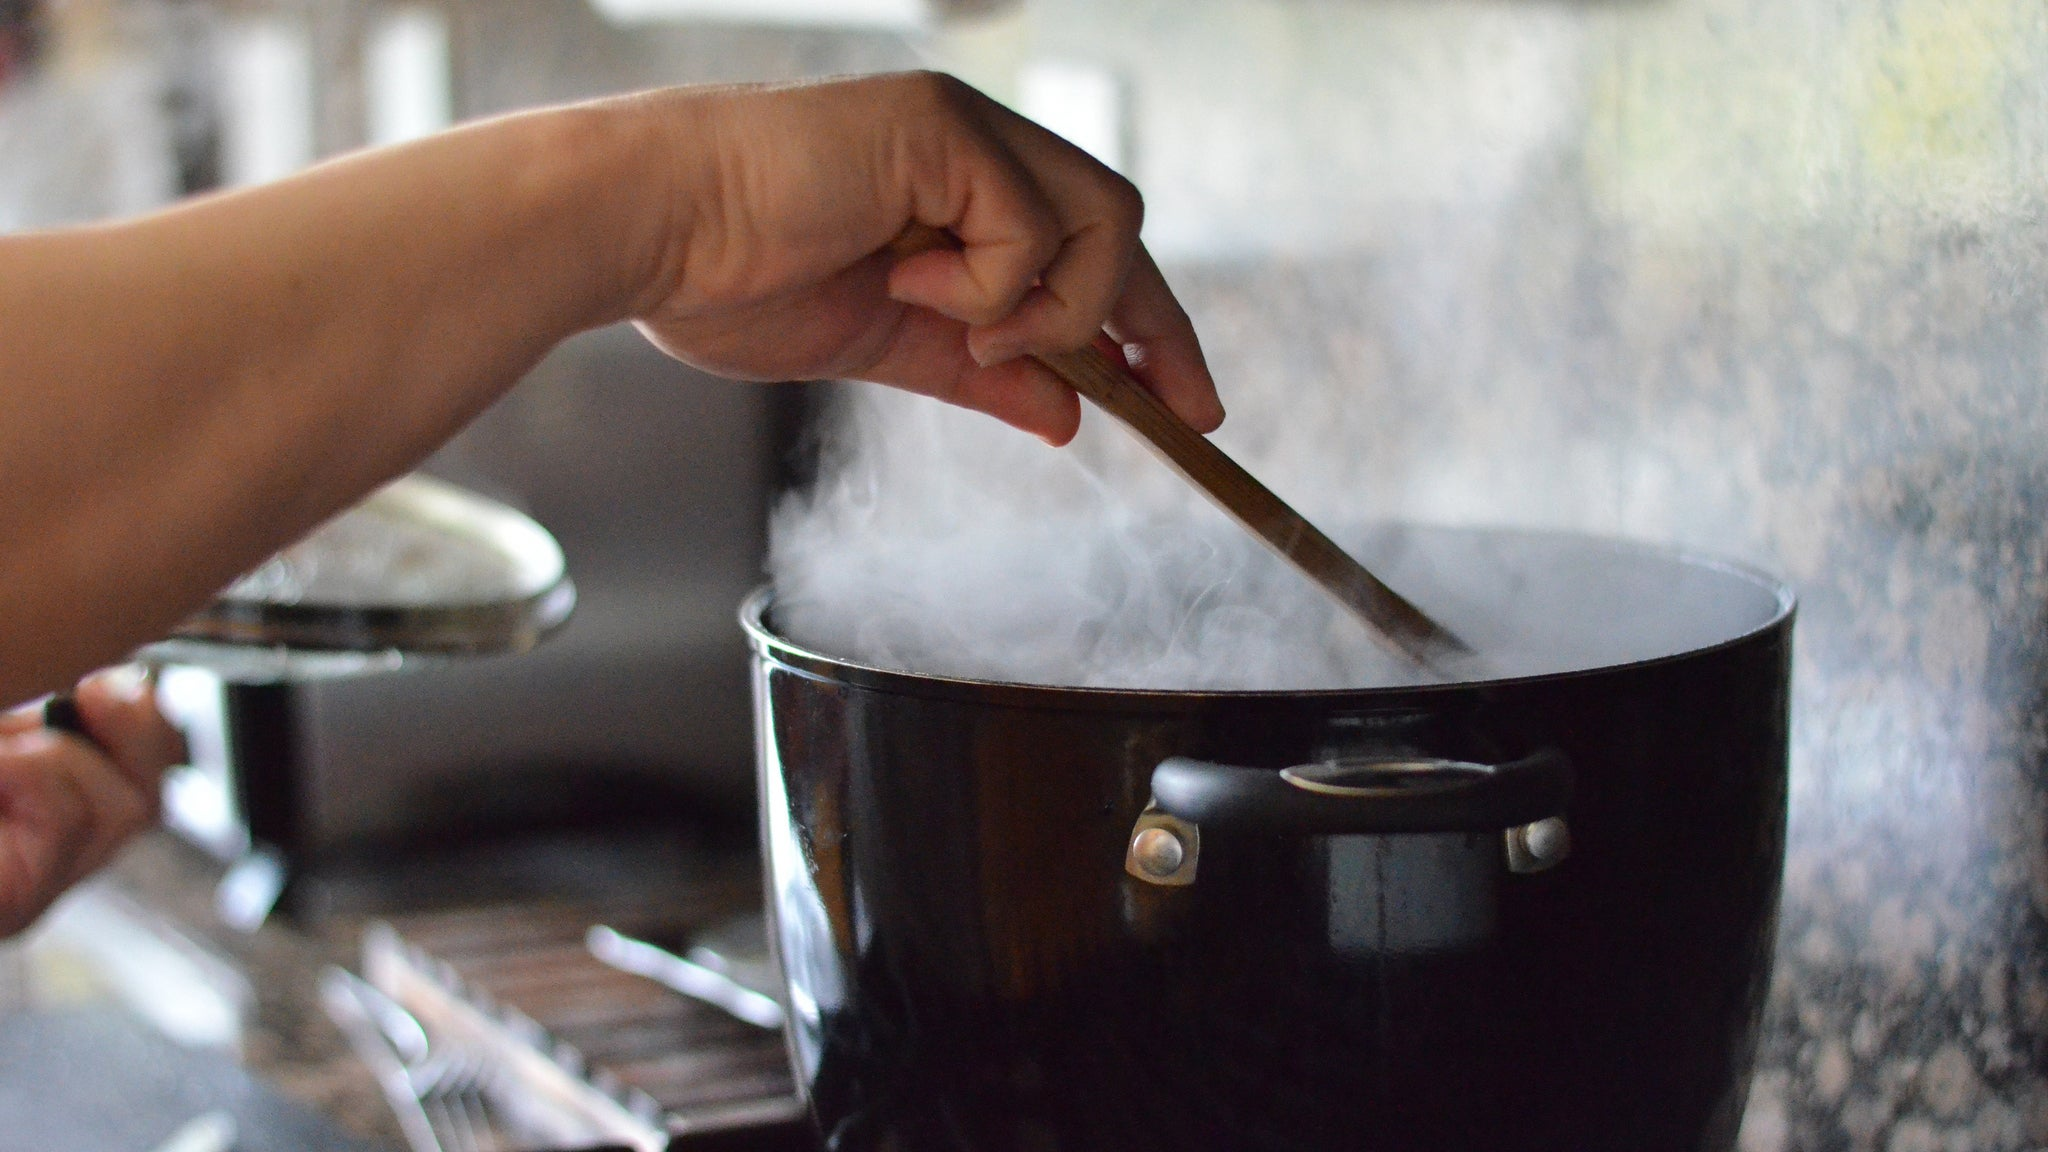 How I Conquered My Fear of Cooking and Got Comfortable in the Kitchen